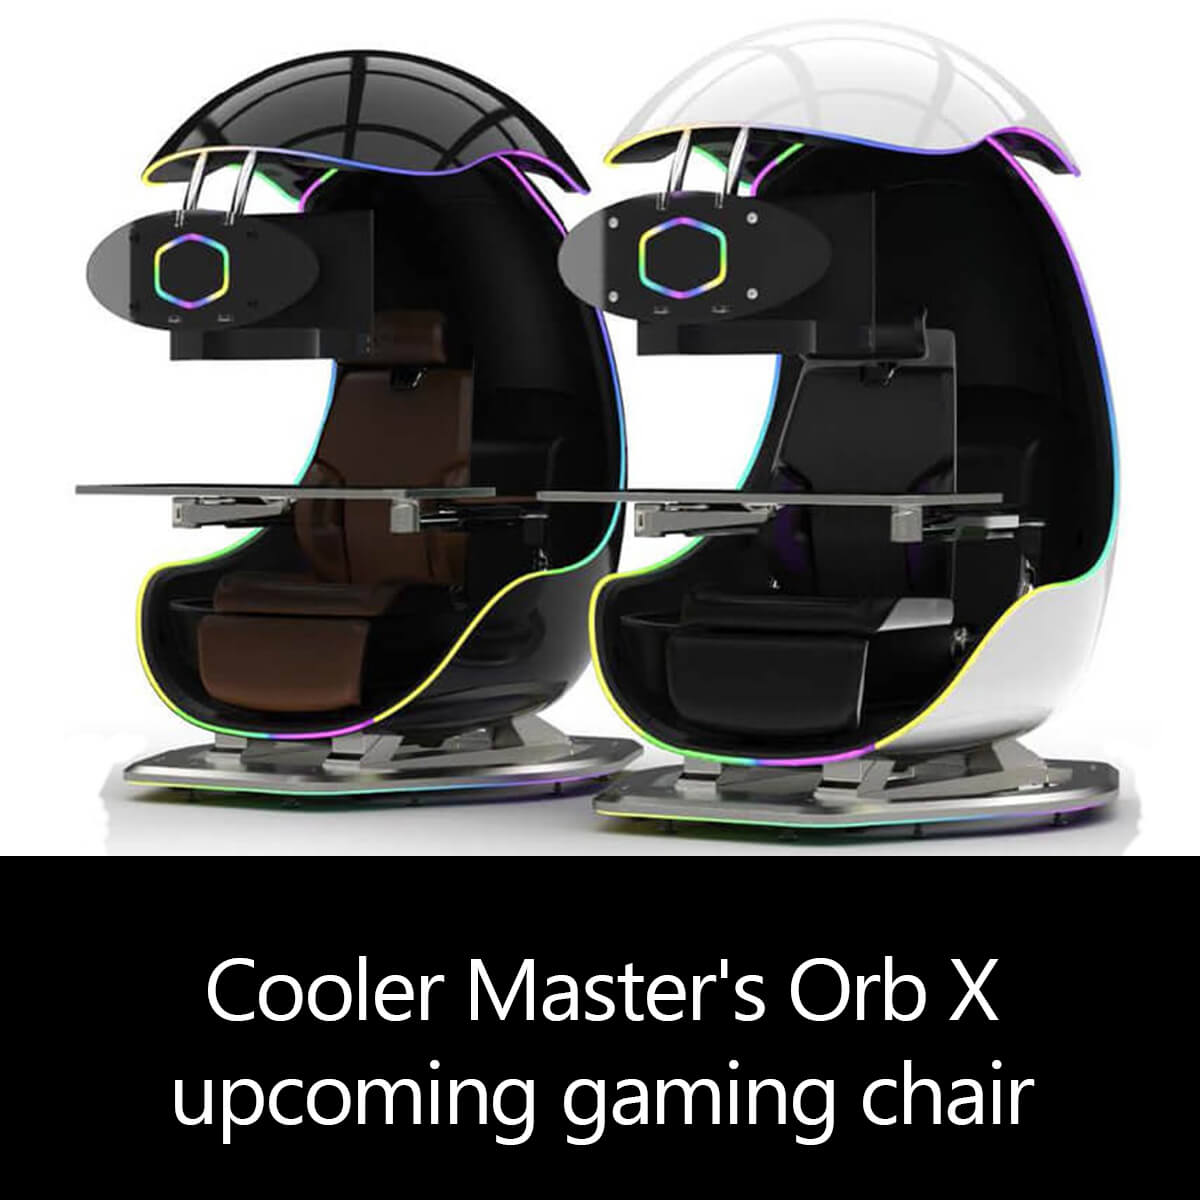 Cooler Master's Orb X upcoming gaming chair